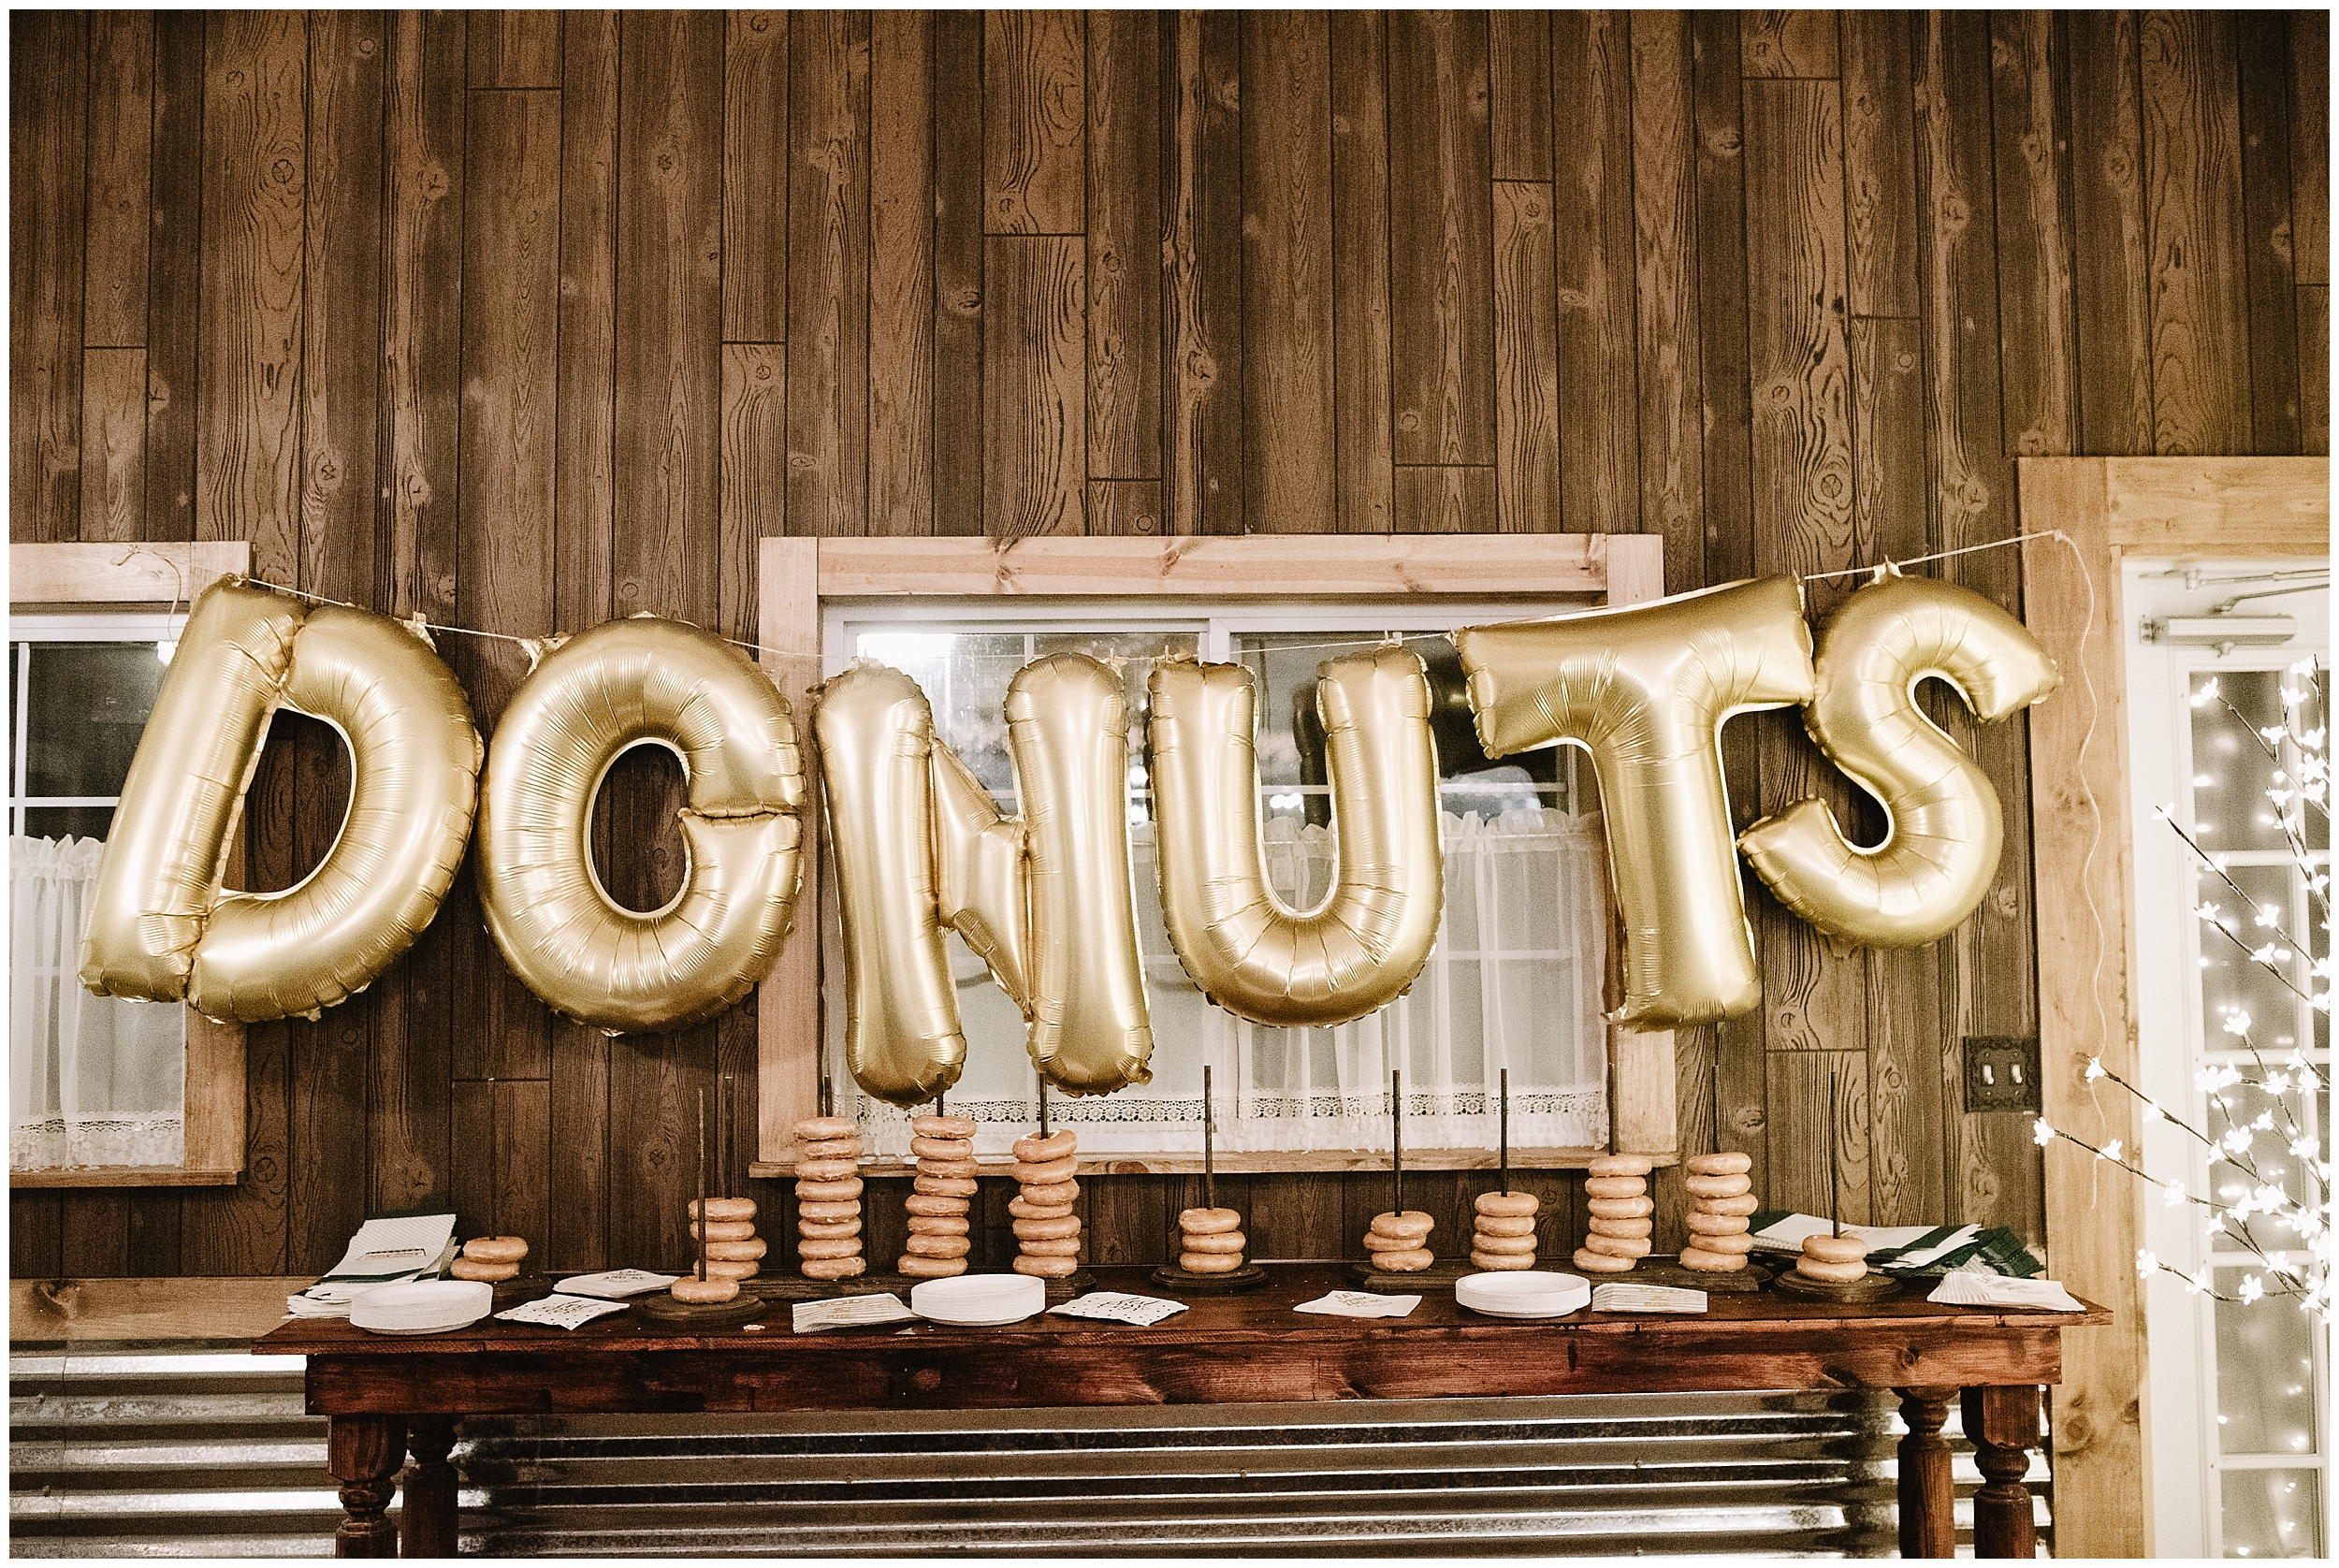 wedding photographer oklahoma reception decorations decor champagne table arrangements mr mrs mr. mrs.  viola kansas rustic timbers donuts gold balloon dessert